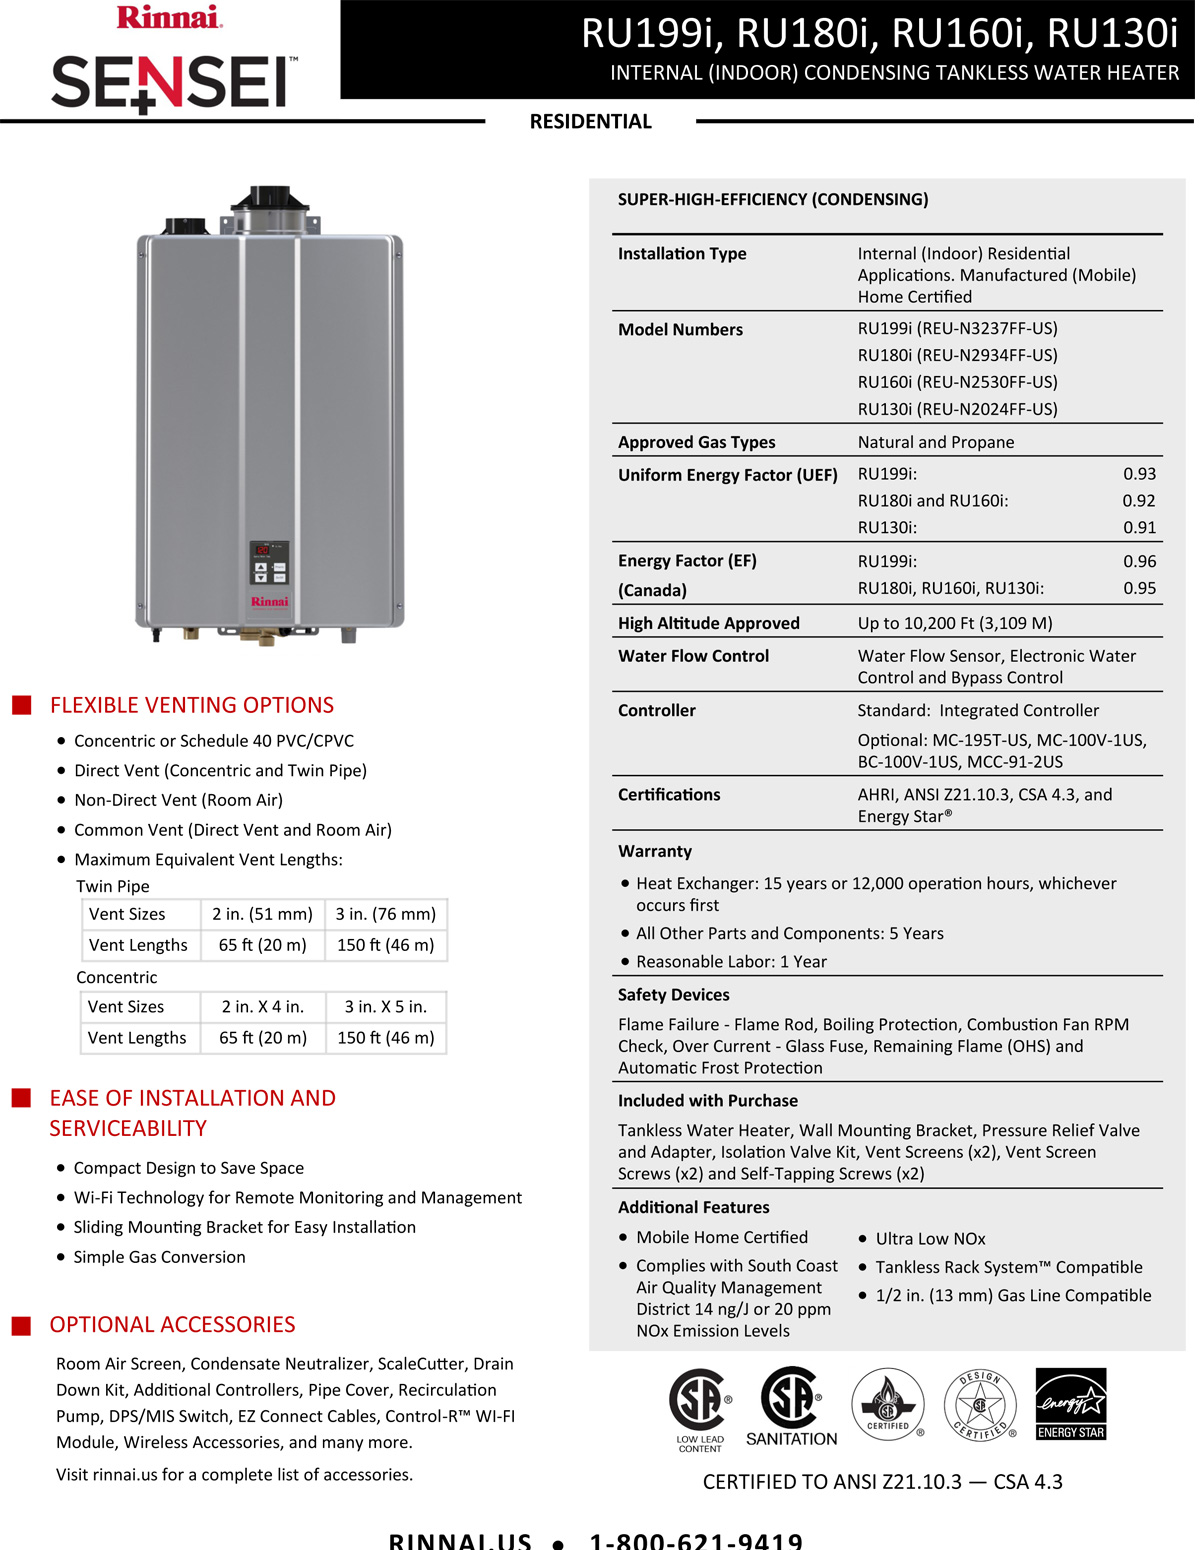 Rinnai Water Heater - Cedar Valley Row Homes